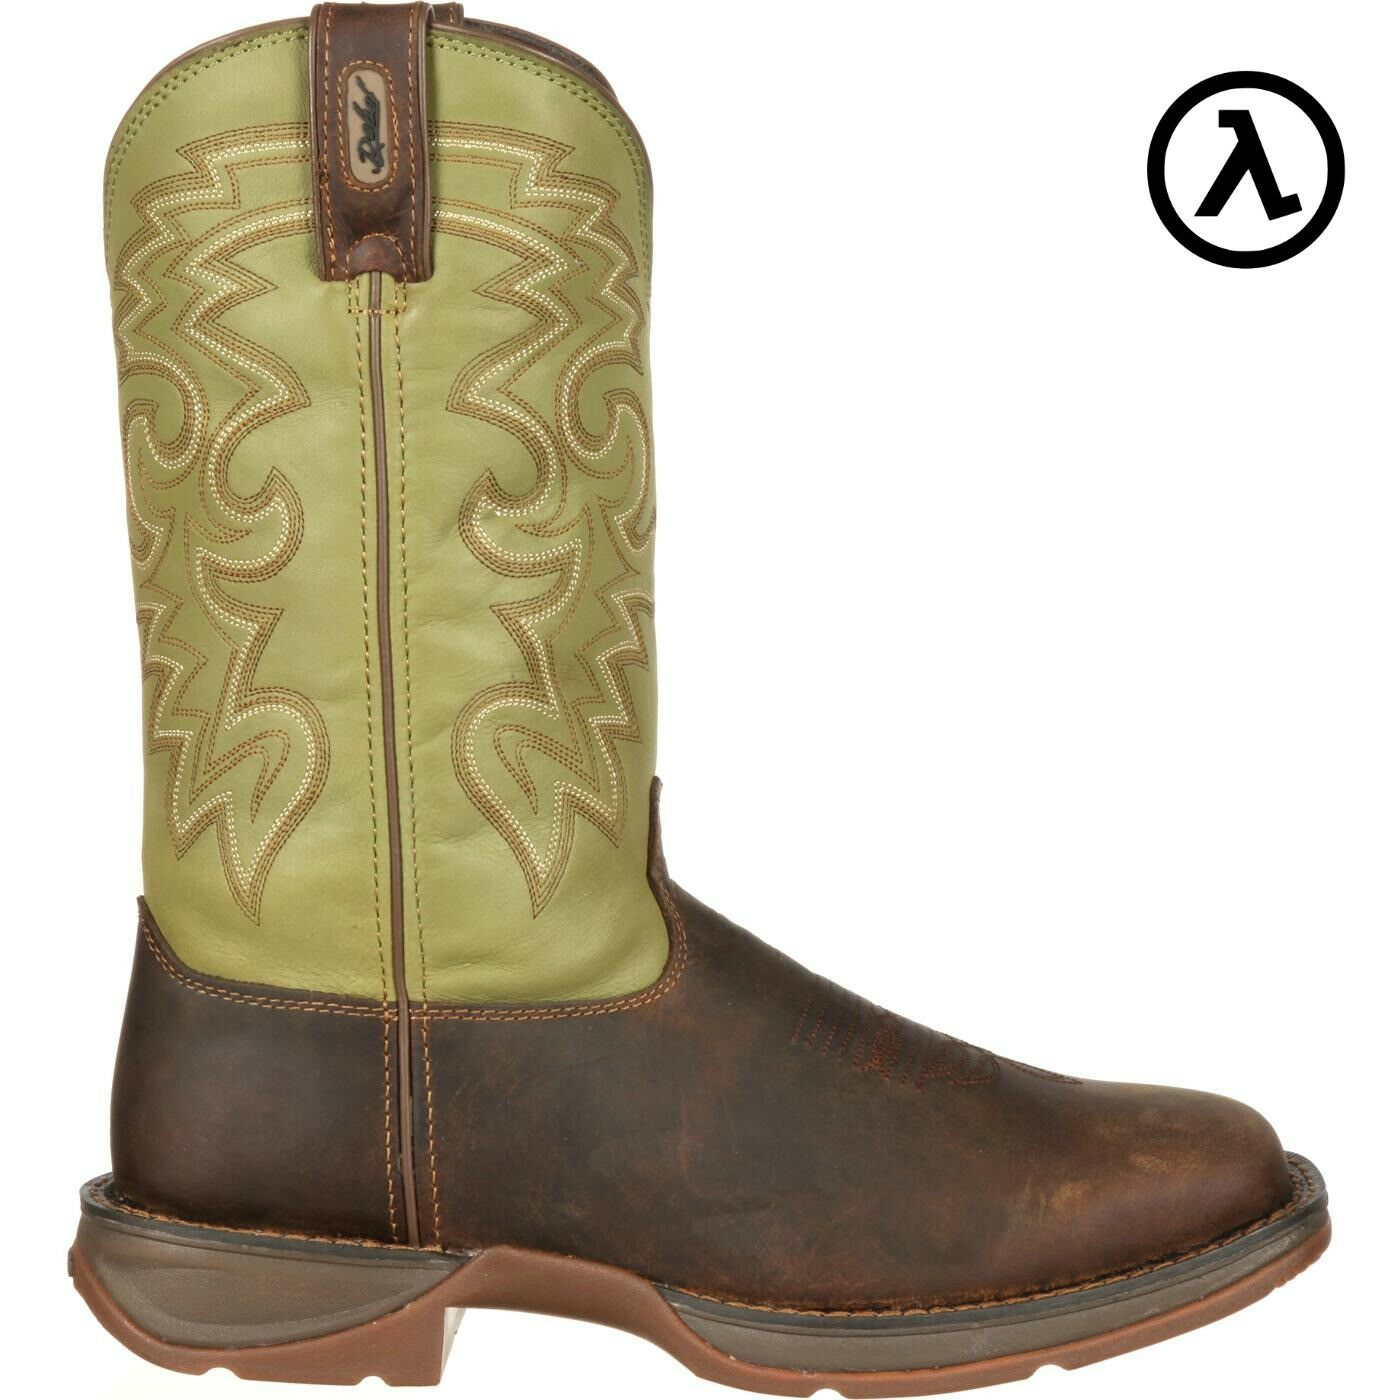 REBEL BY DURANGO PULL-ON WESTERN BOOTS DB5416 - ALL SIZES - NEW